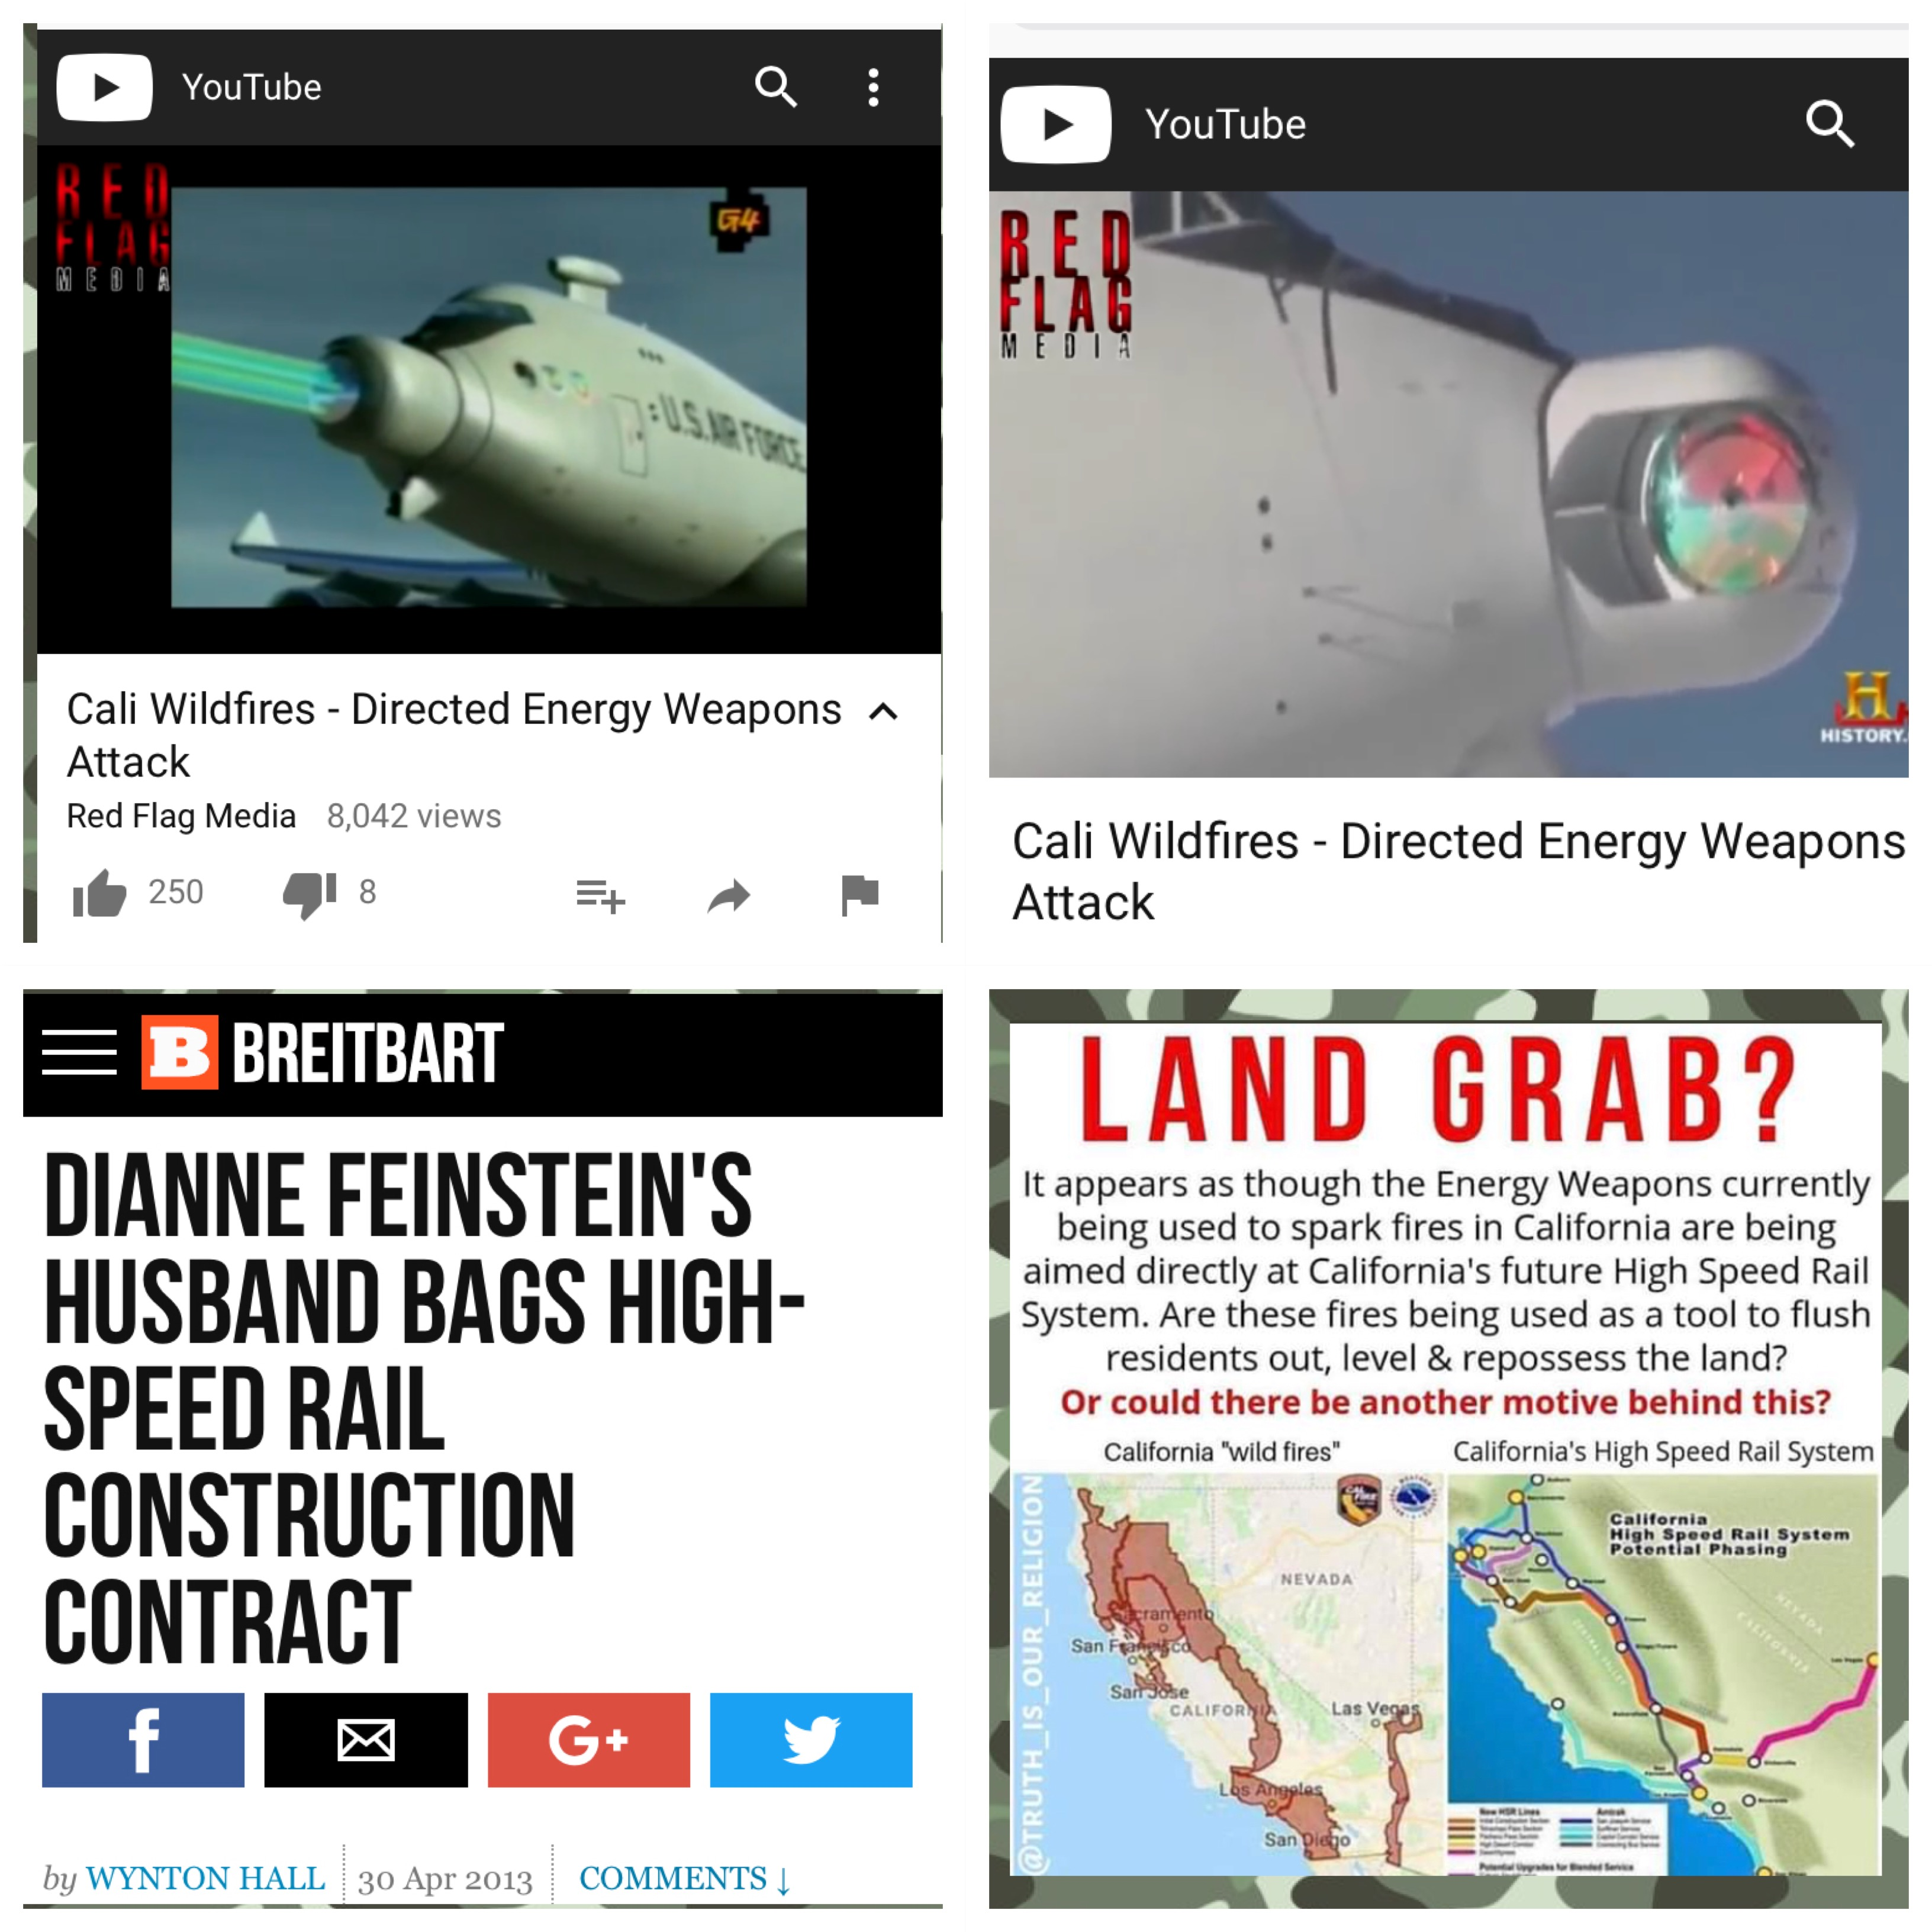 DIRECTED ENERGY WEAPONS ATTACK ON CALIFORNIA – Kristen Hinkson com